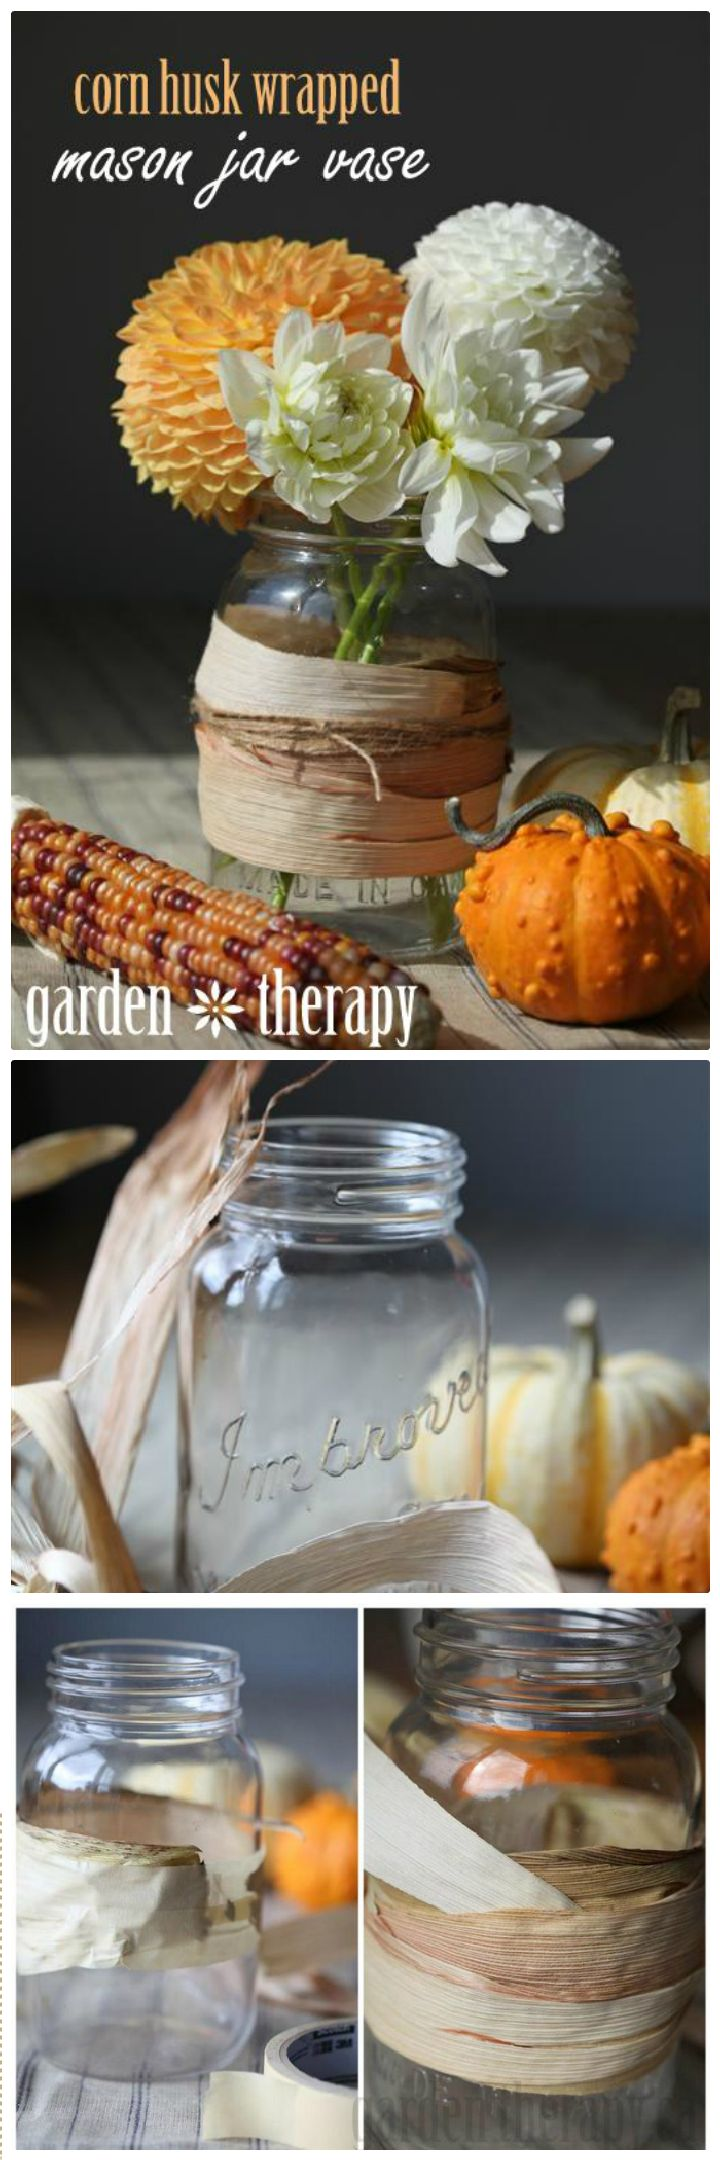 Corn Husk Wrapped Mason Jar - mason jar craft ideas | mason jar craft ideas diy | mason jar craft ideas christmas | mason jar craft ideas decor | mason jar craft ideas for kids